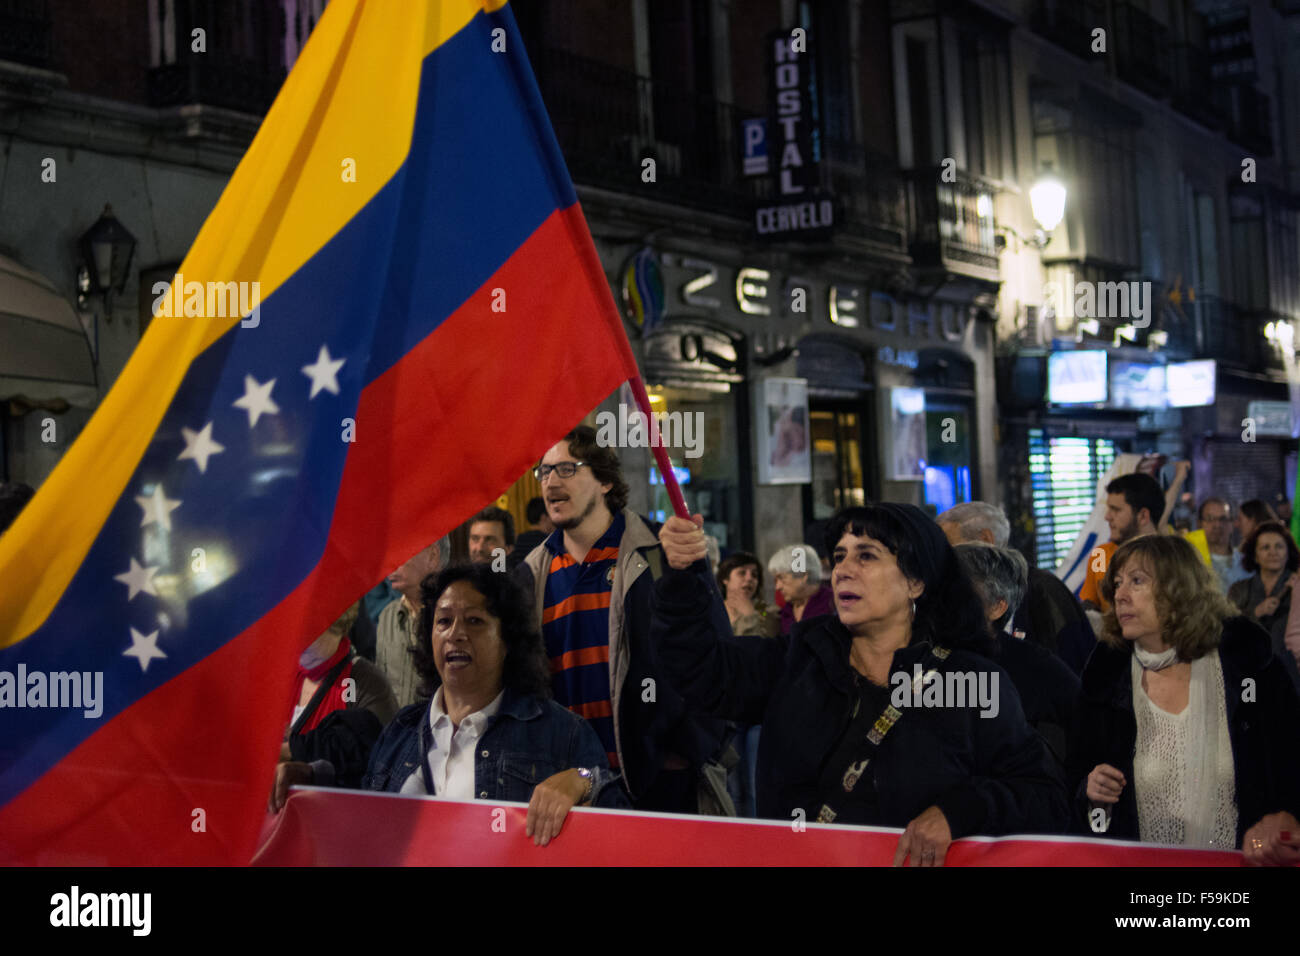 Madrid, Spain. 30th Oct, 2015. A woman waving Venezuelan flag during a demonstration in Madrid against imperialism - Stock Image